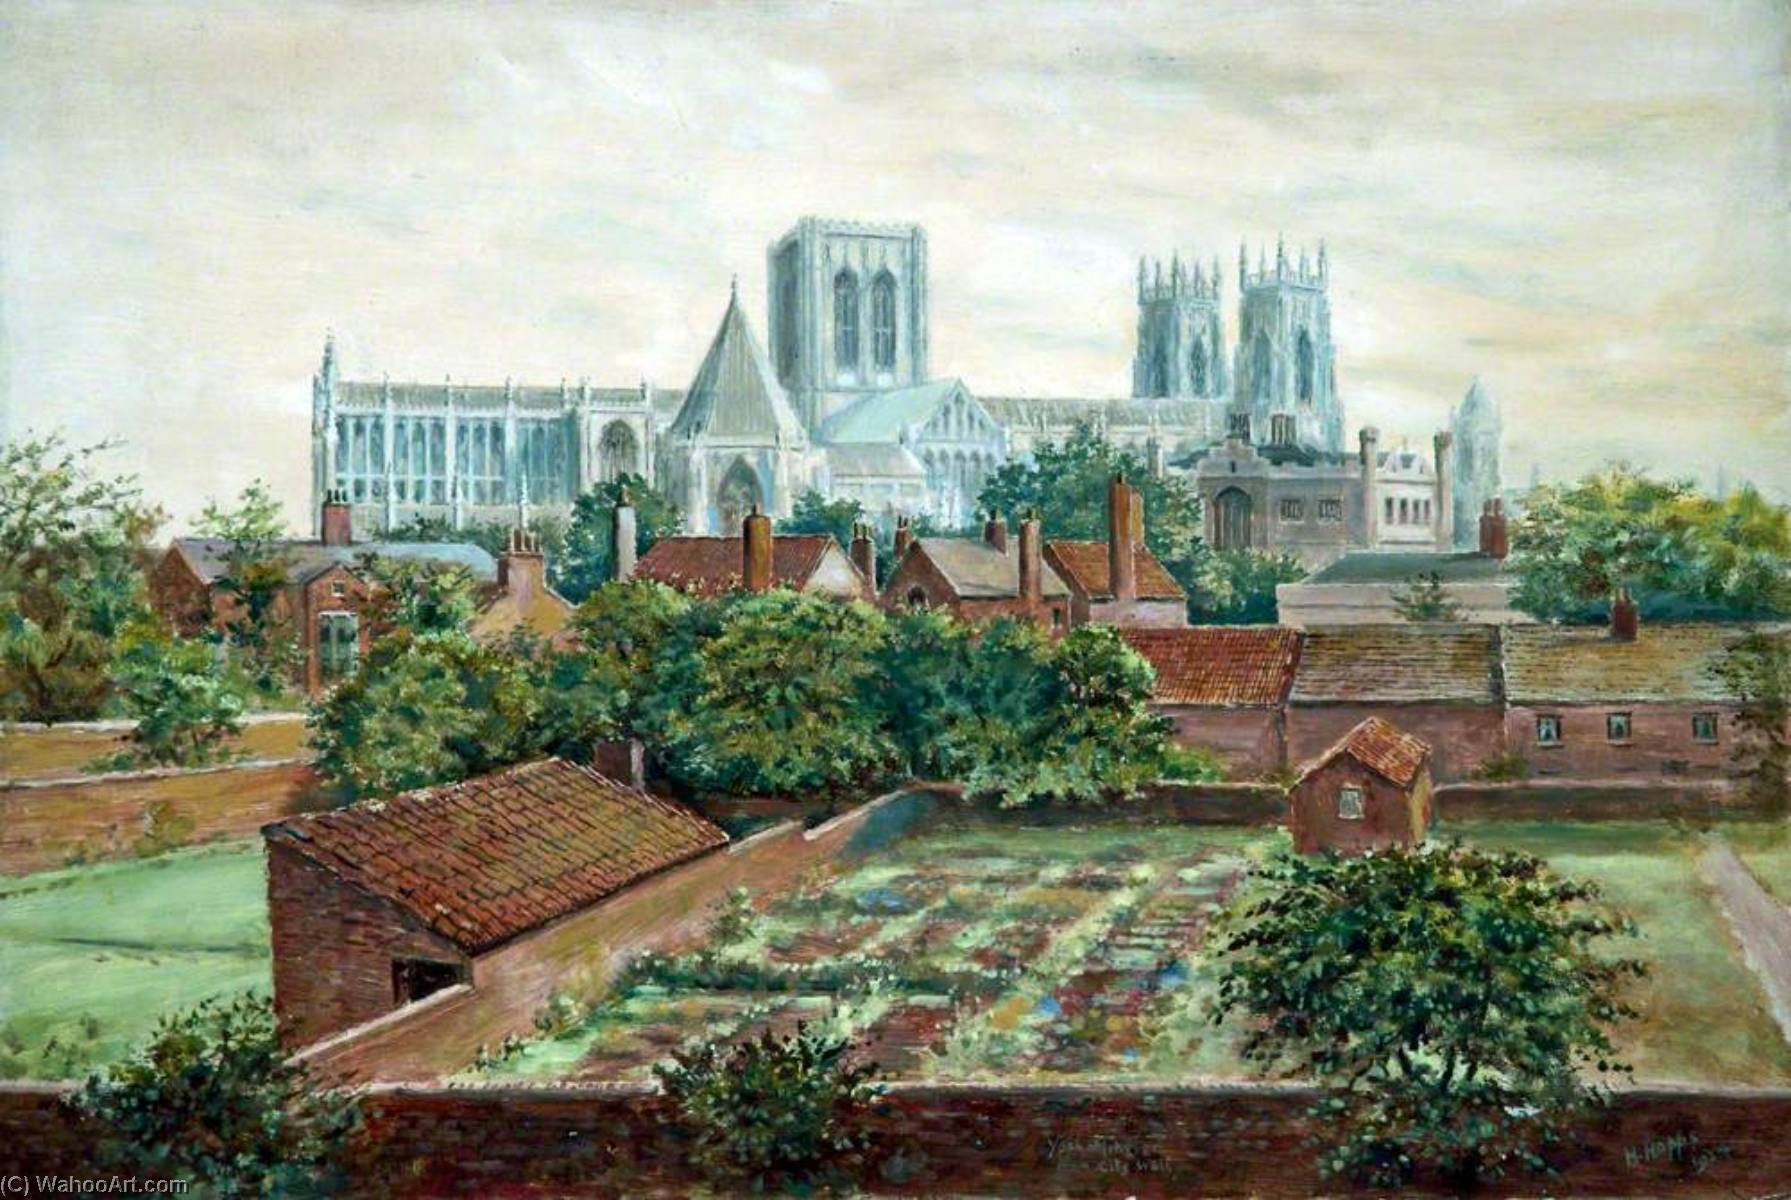 York Minster Cathedral from the City Walls, 1924 by Harold Hopps | Oil Painting | WahooArt.com